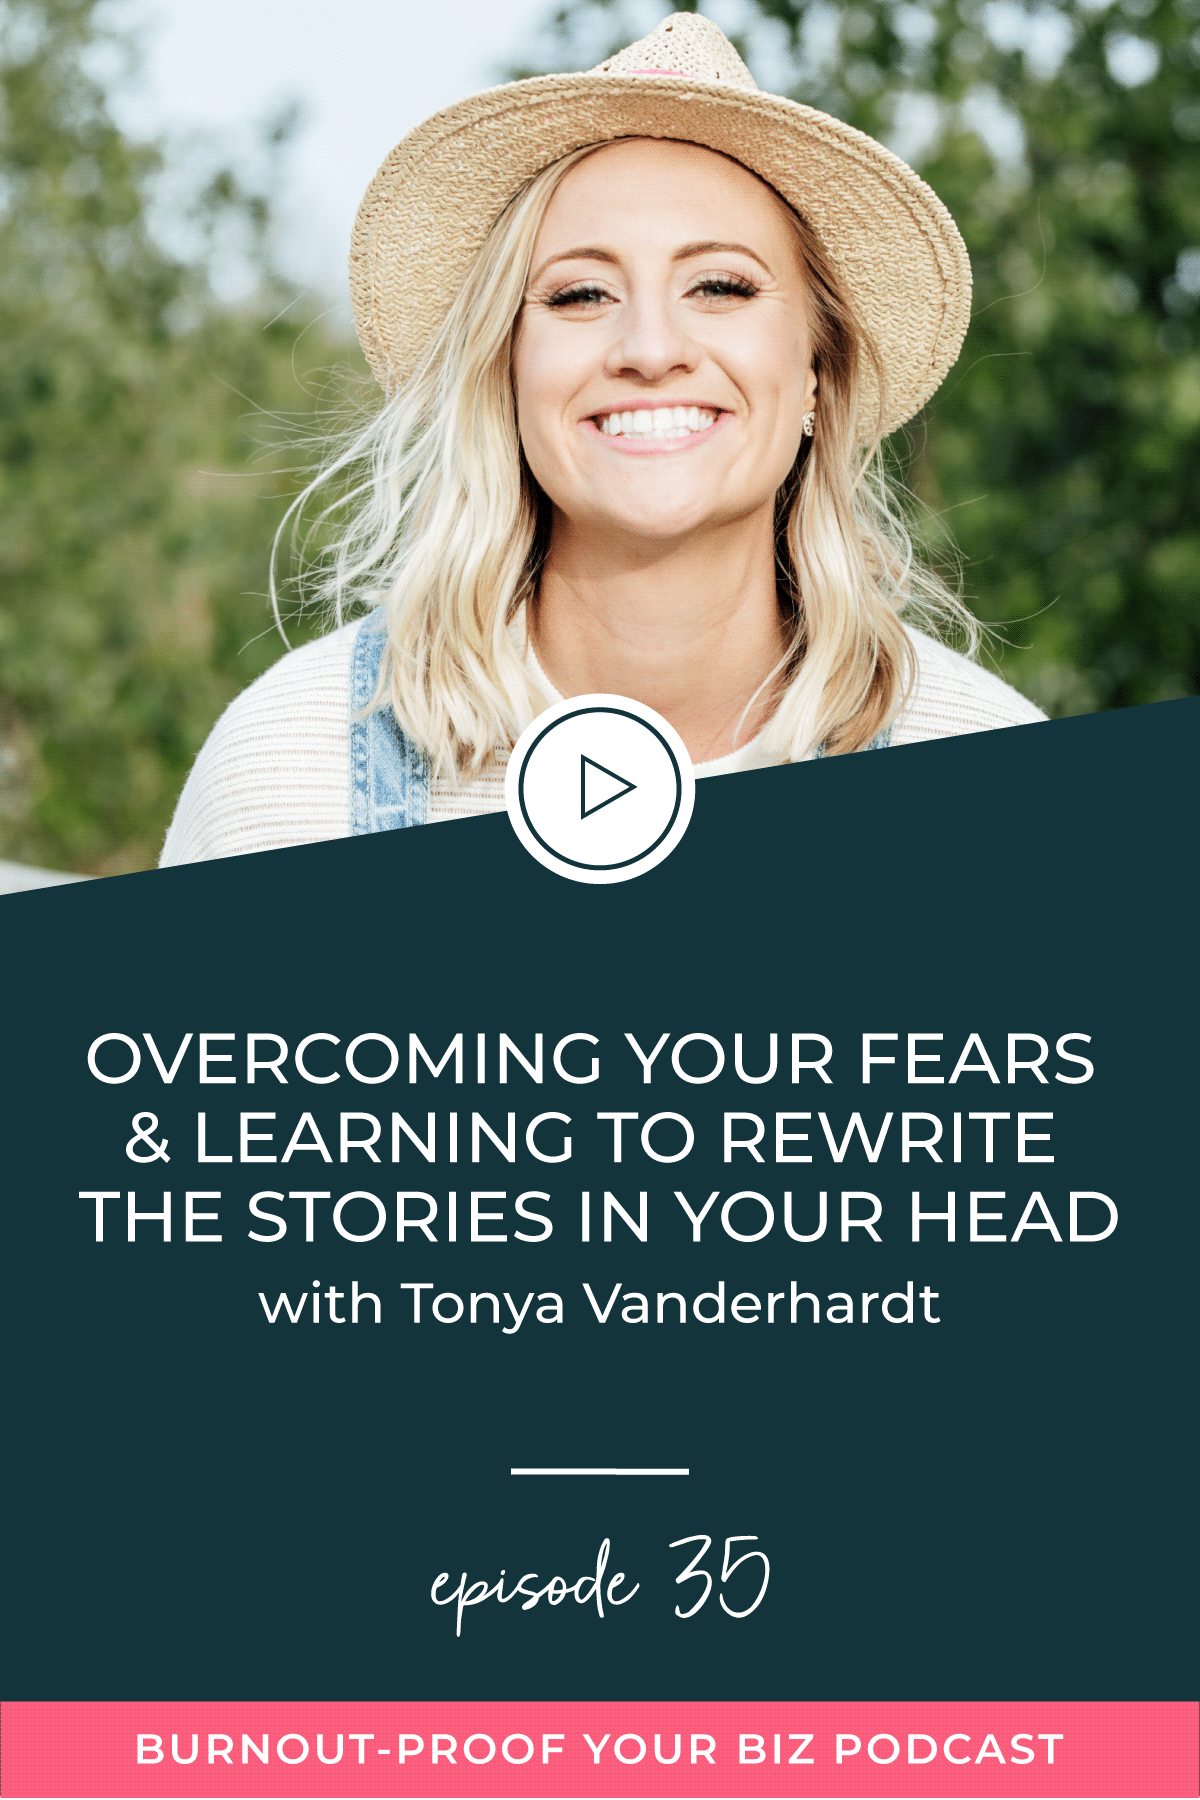 Burnout-Proof Your Biz Podcast with Chelsea B Foster | Episode 035 - Overcoming Your Fears and Learning to Rewrite the Stories in Your Head with Tonya Vanderhart | Learn how to run your biz and live your dream life on your own terms without the fear of burnout.